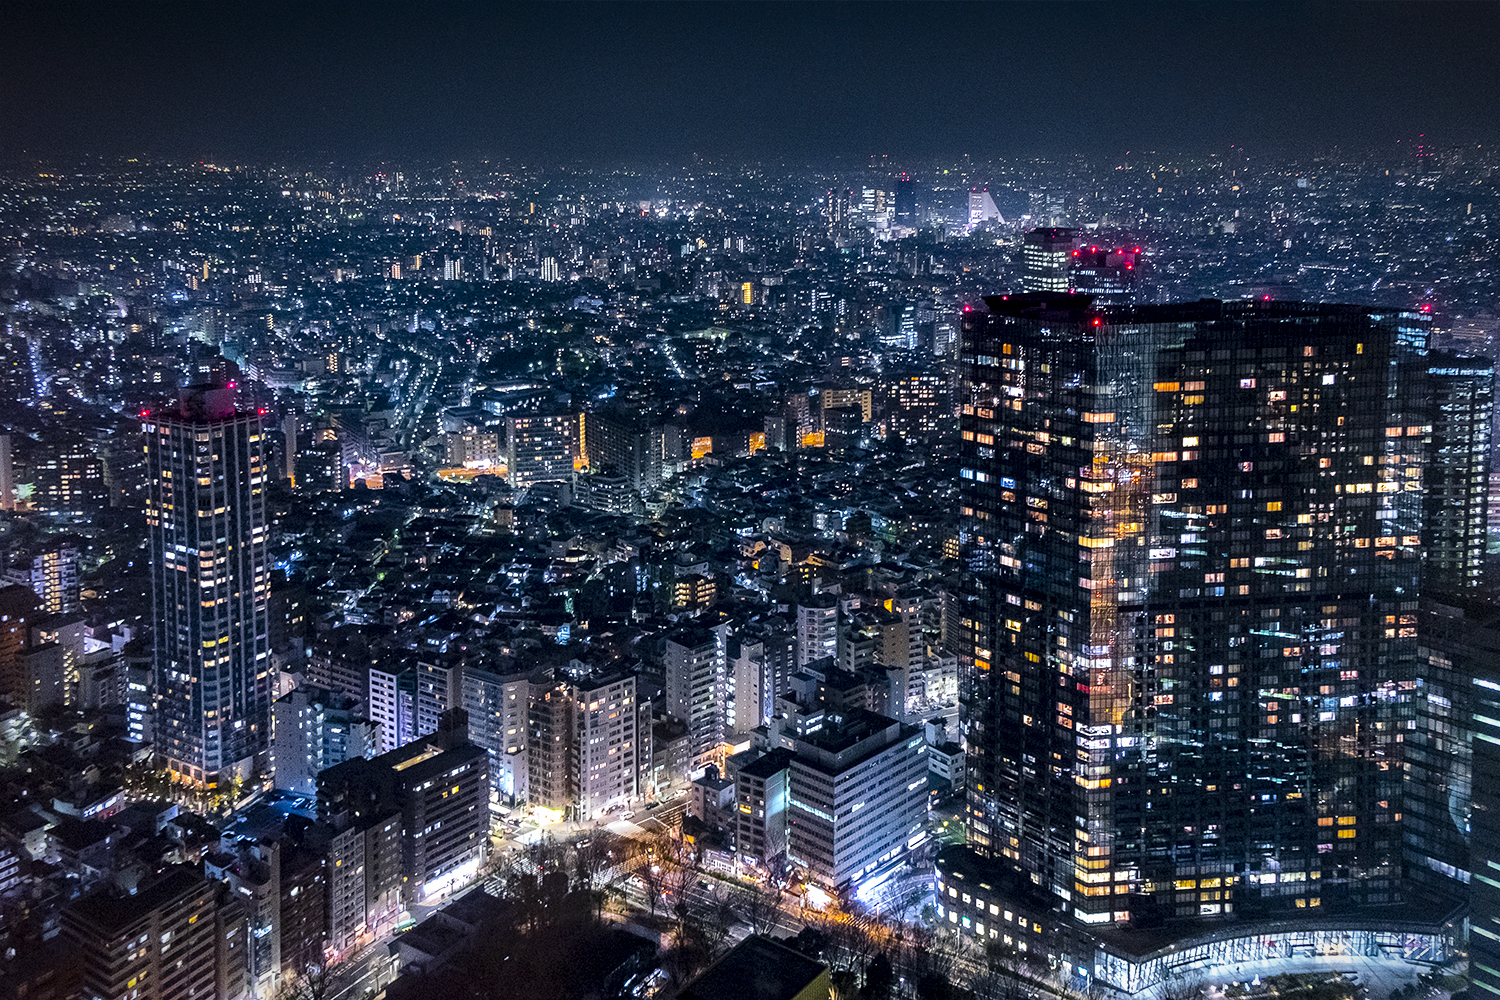 Looking out across Tokyo with lights as far as you can see.